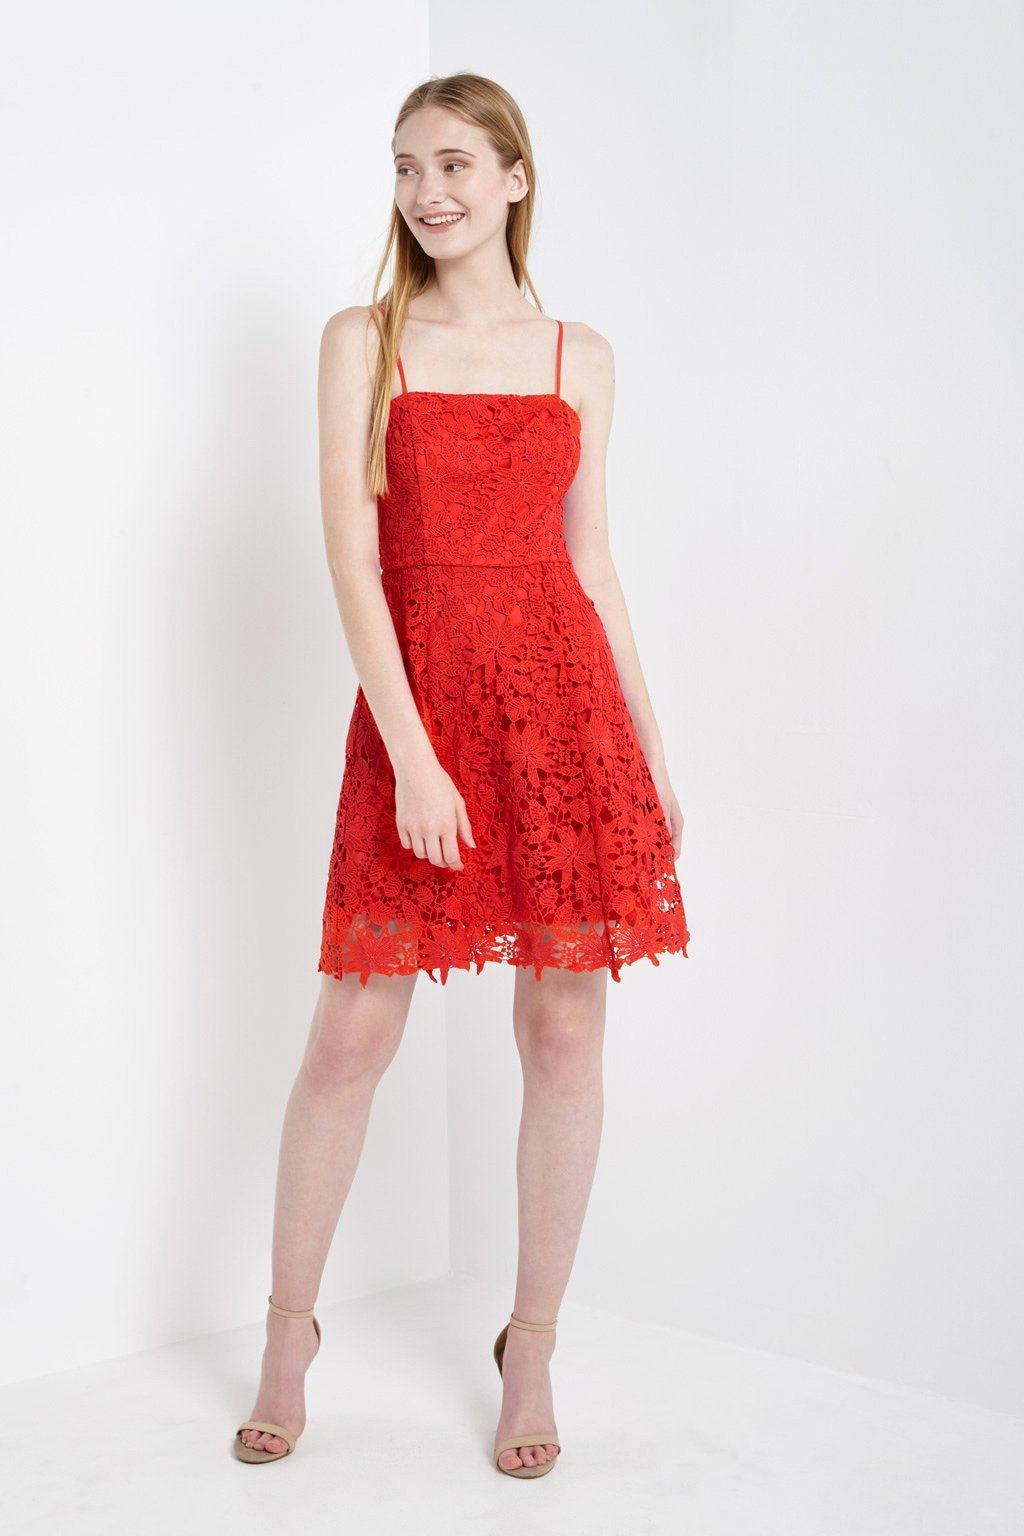 Poshsquare Dress Crochet Lace Spaghetti Strap Dress